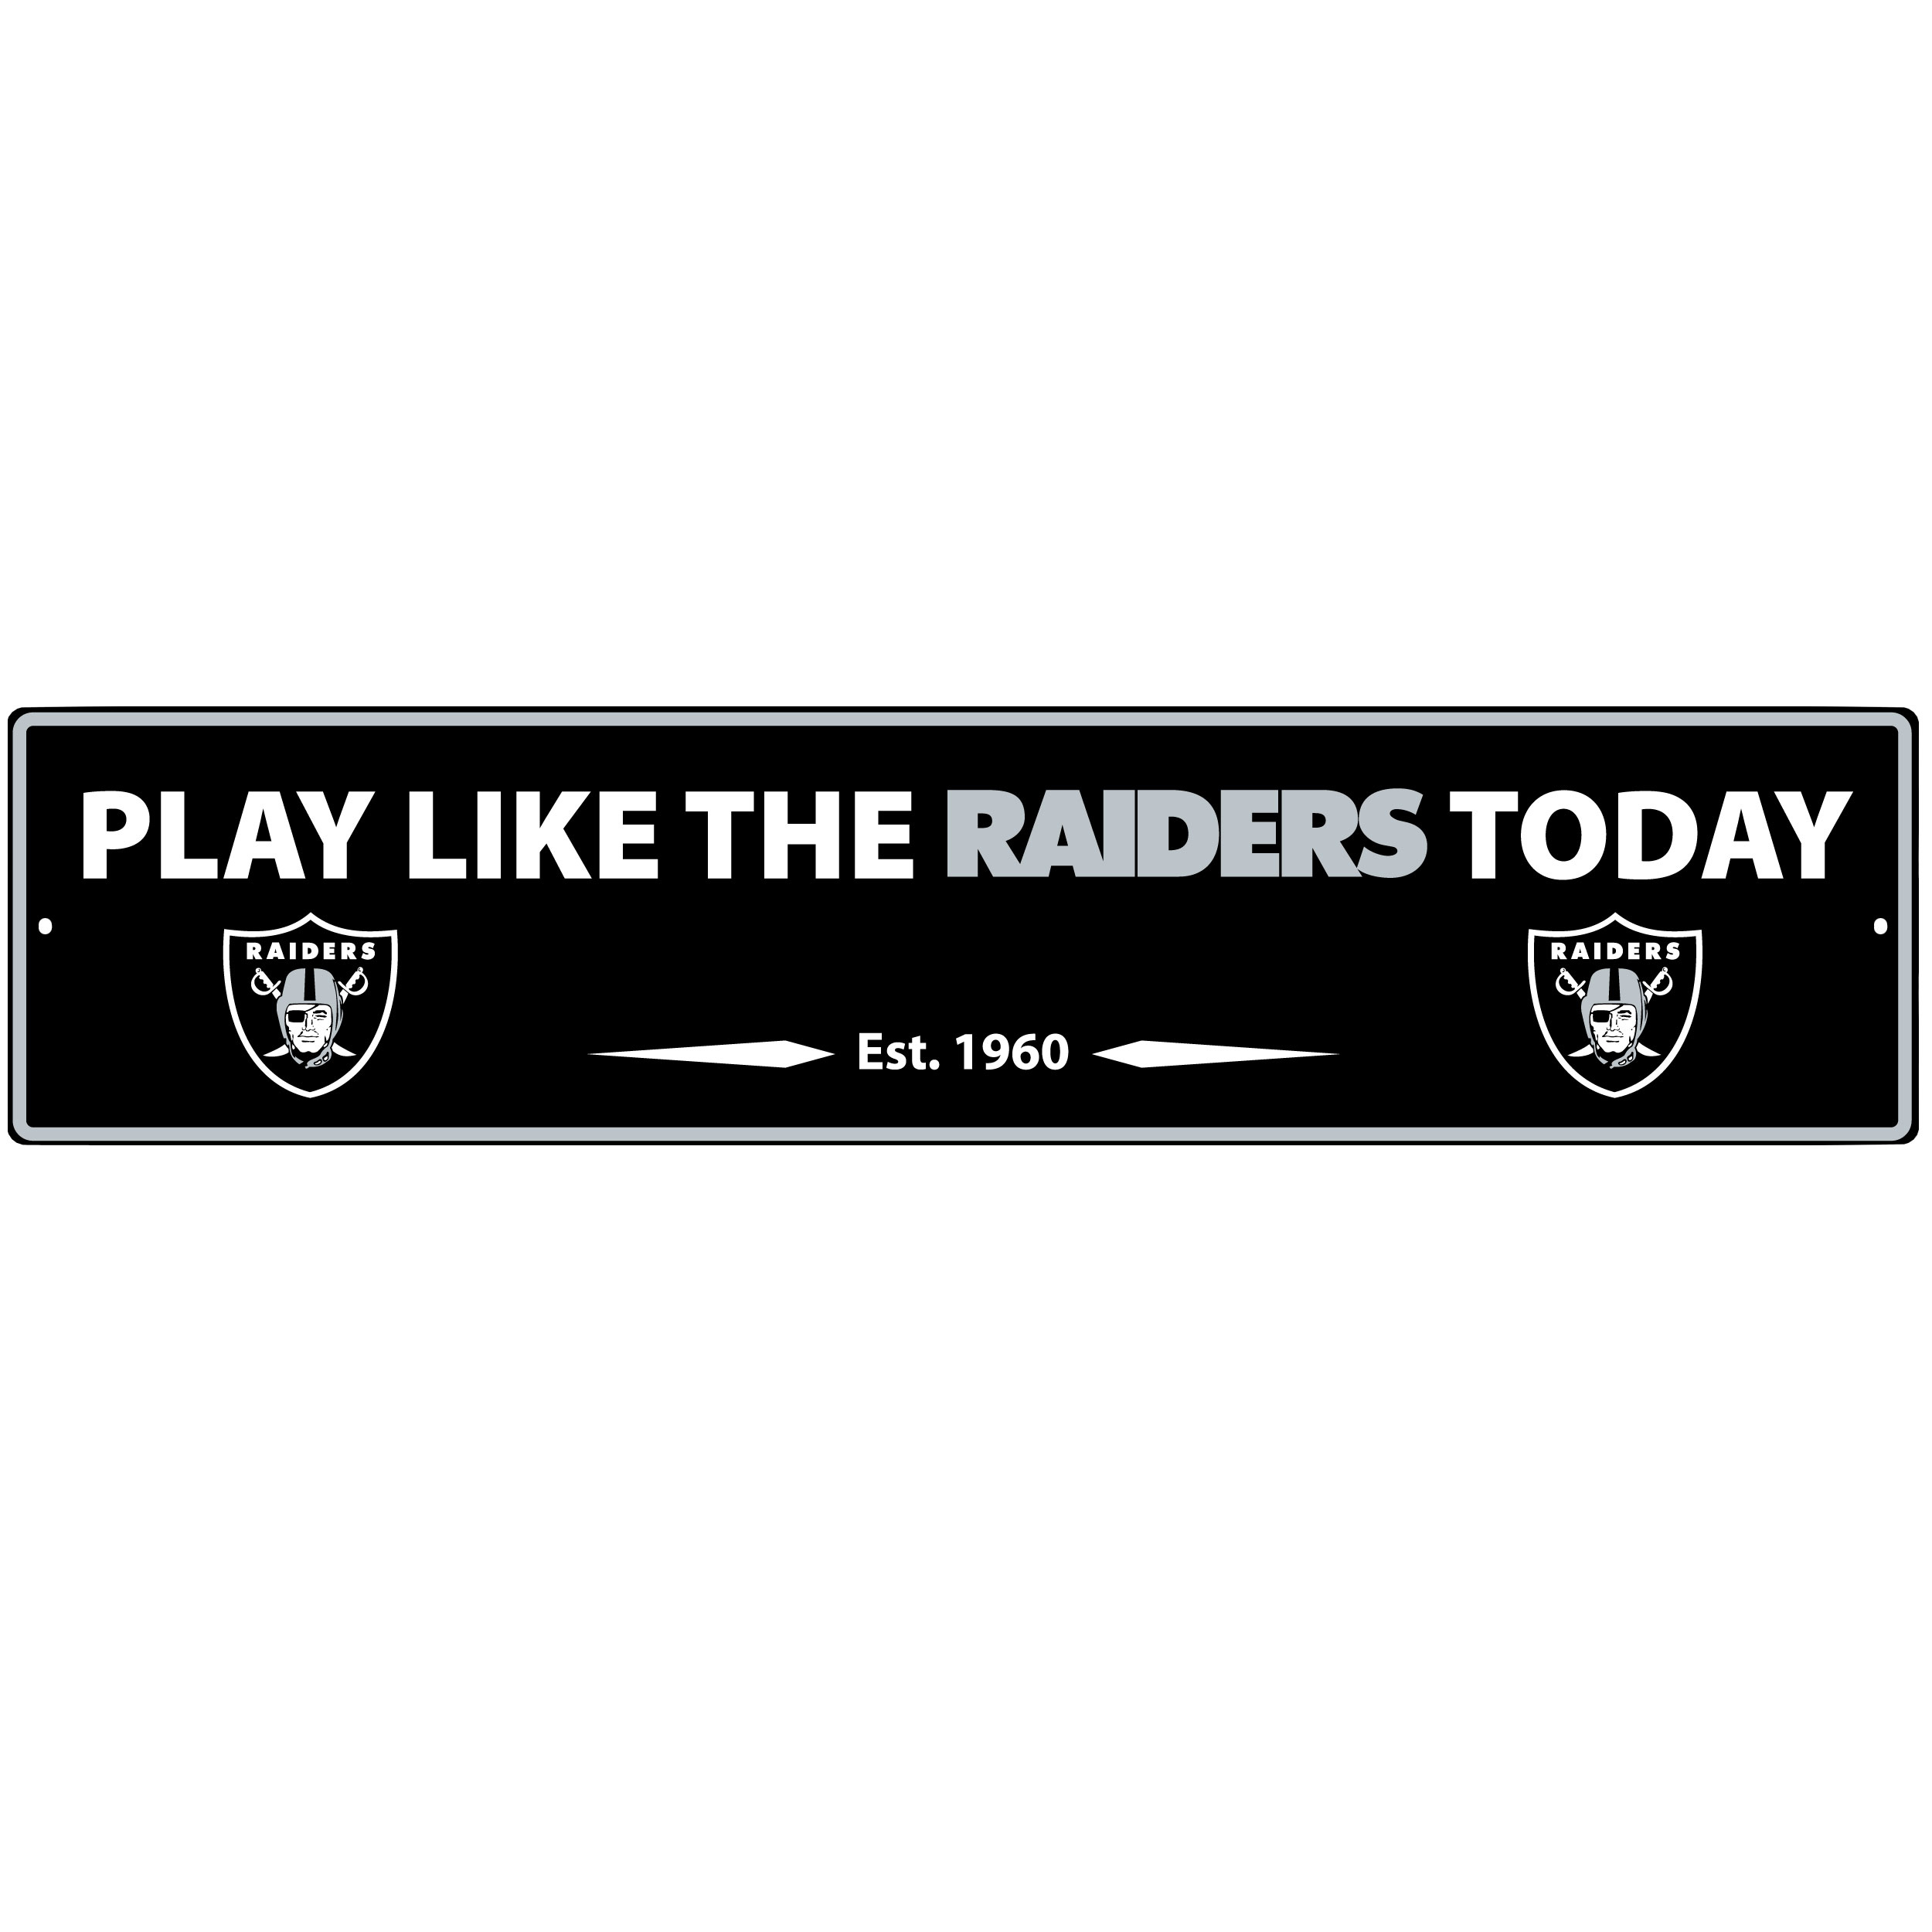 Oakland Raiders Street Sign Wall Plaque - This motivational plaque is perfect for hanging over the doorway of your fan cave reminding you to play like your champion Oakland Raiders! The sign is 20 inches wide and made of light-weight stamped aluminum. The bright team colors and classic design make this a must-have home décor accessory that would look great in any game room, living room or office!